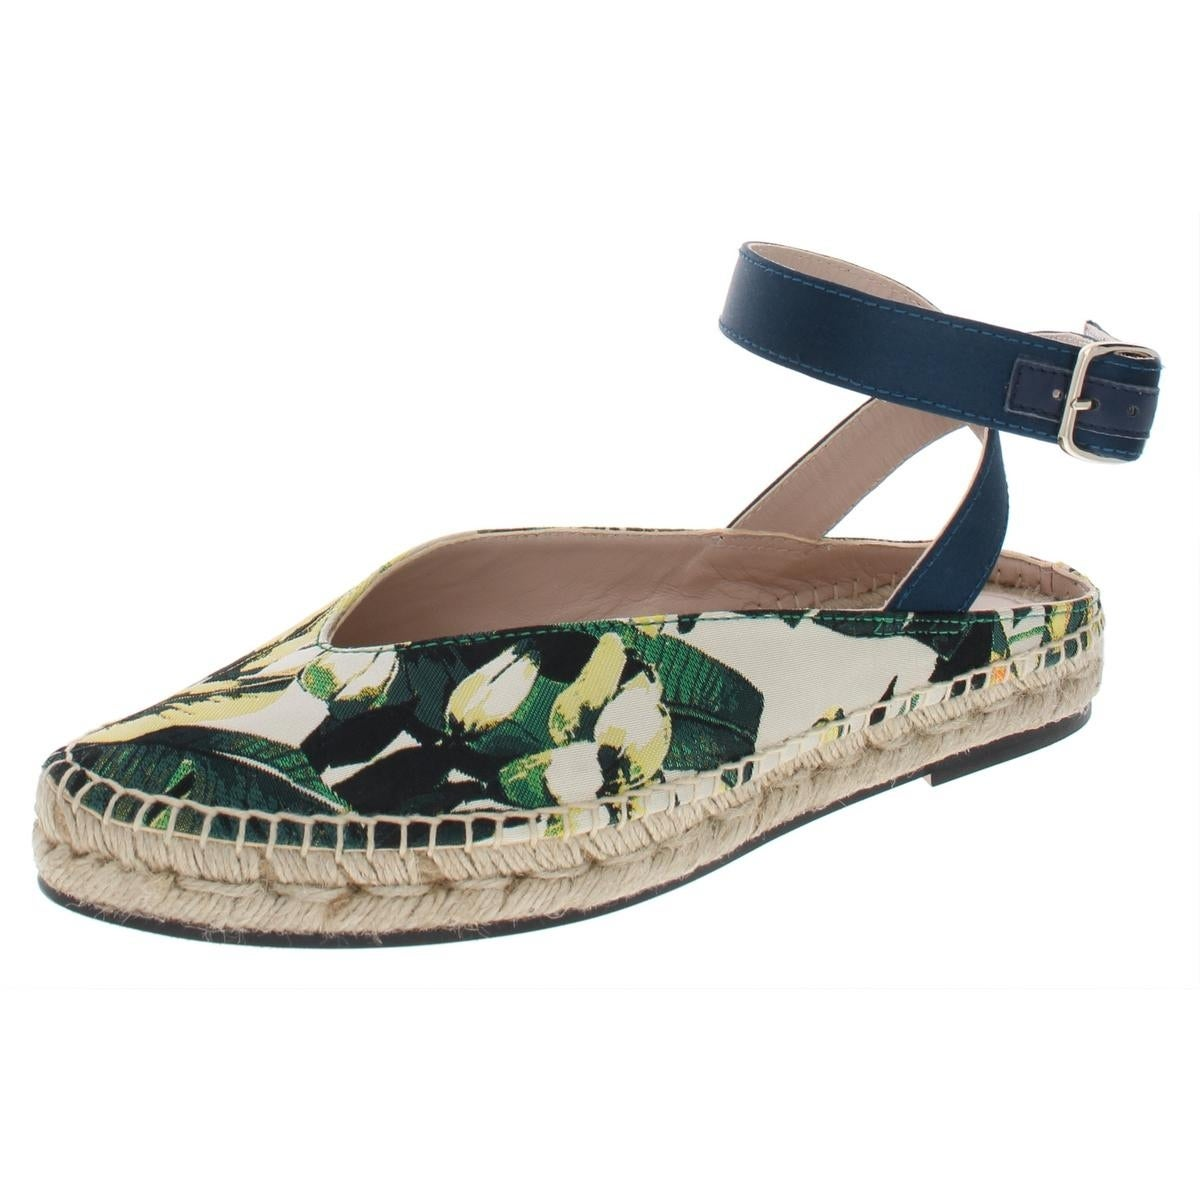 7400c2c86 Shop Stuart Weitzman Womens Toga Espadrilles Solid Ankle Wrap - Free  Shipping Today - Overstock - 26566303